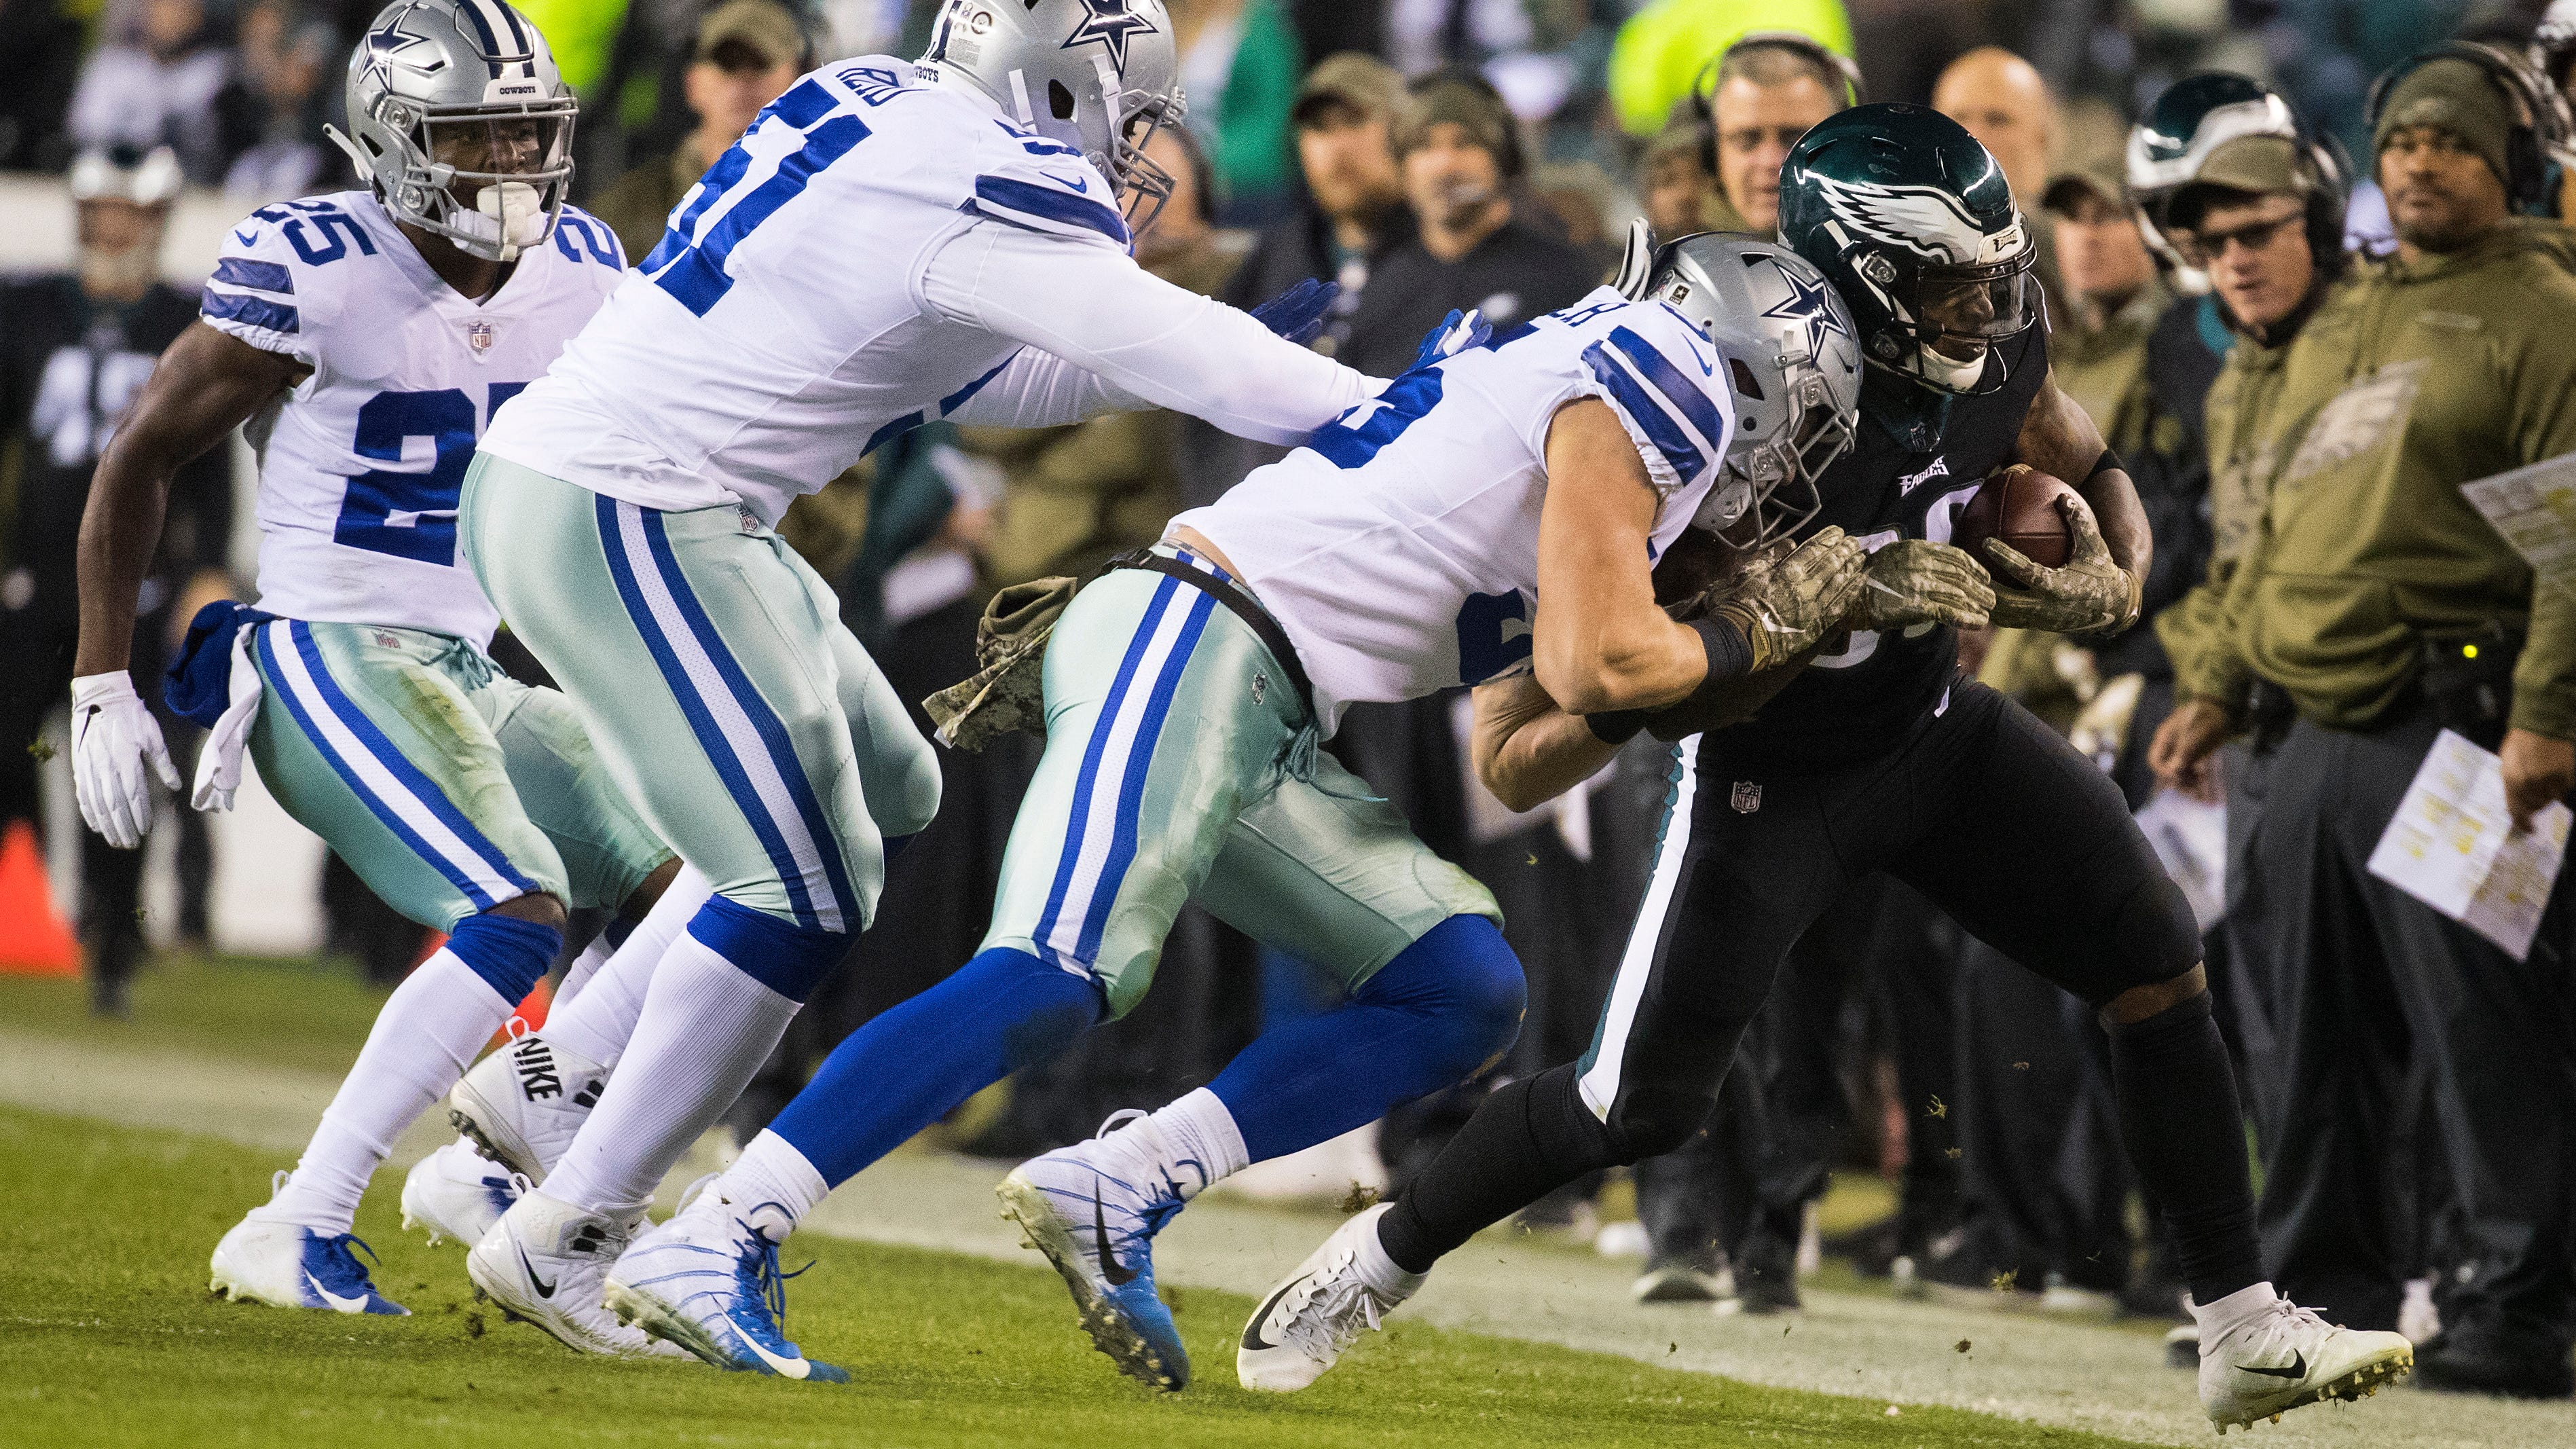 Brutal schedule ahead, Eagles' mediocre play demanded victory in NFC East showdown with rival Dallas